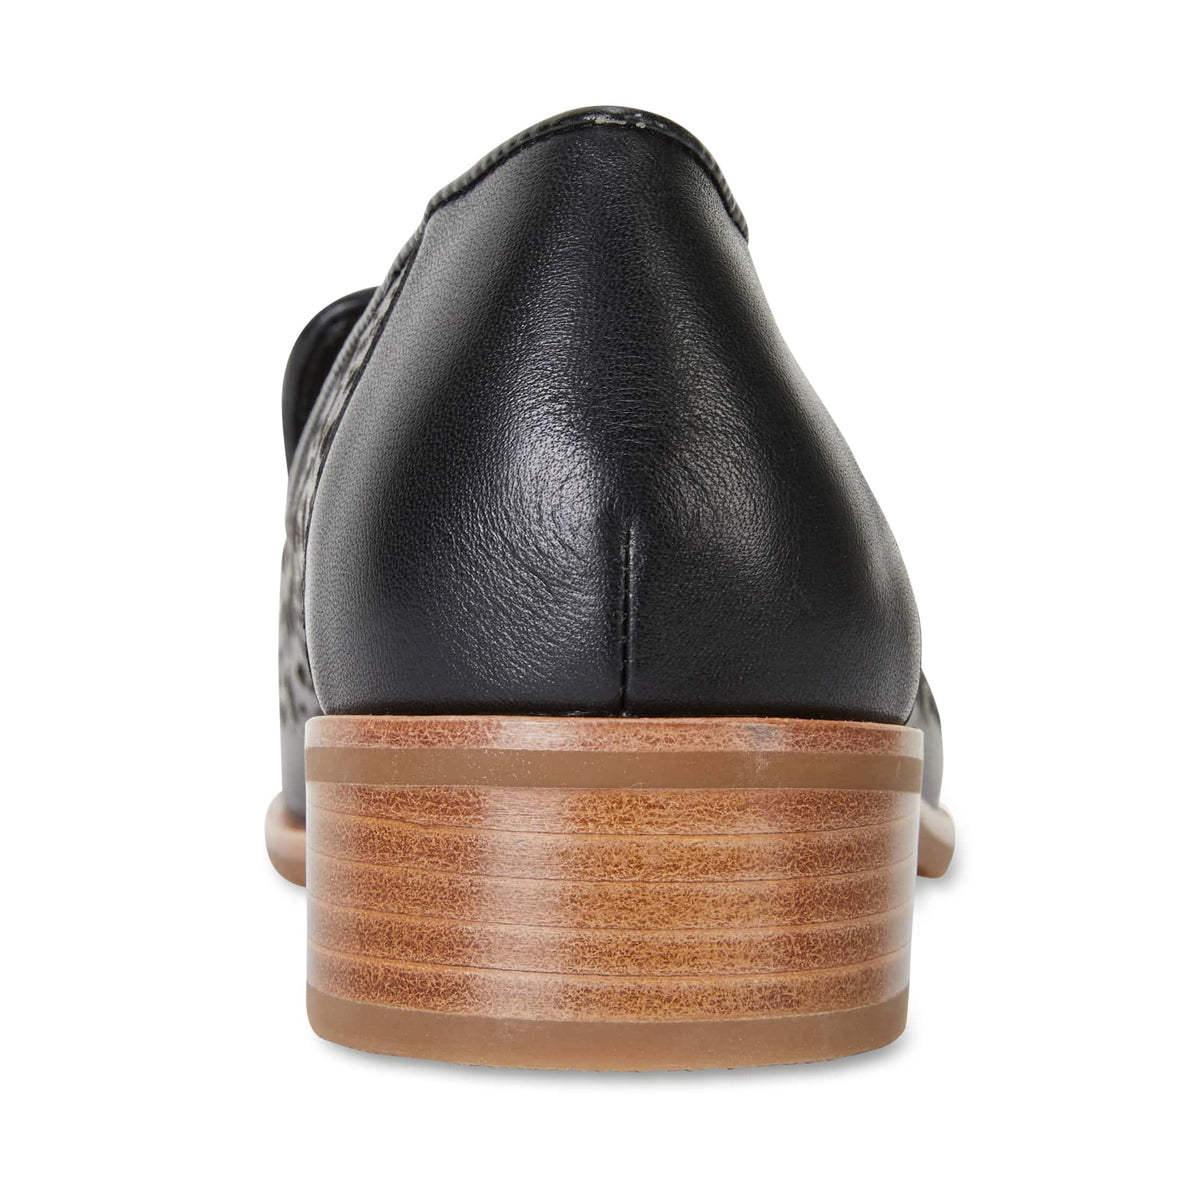 Satchel Loafer in Black Leather